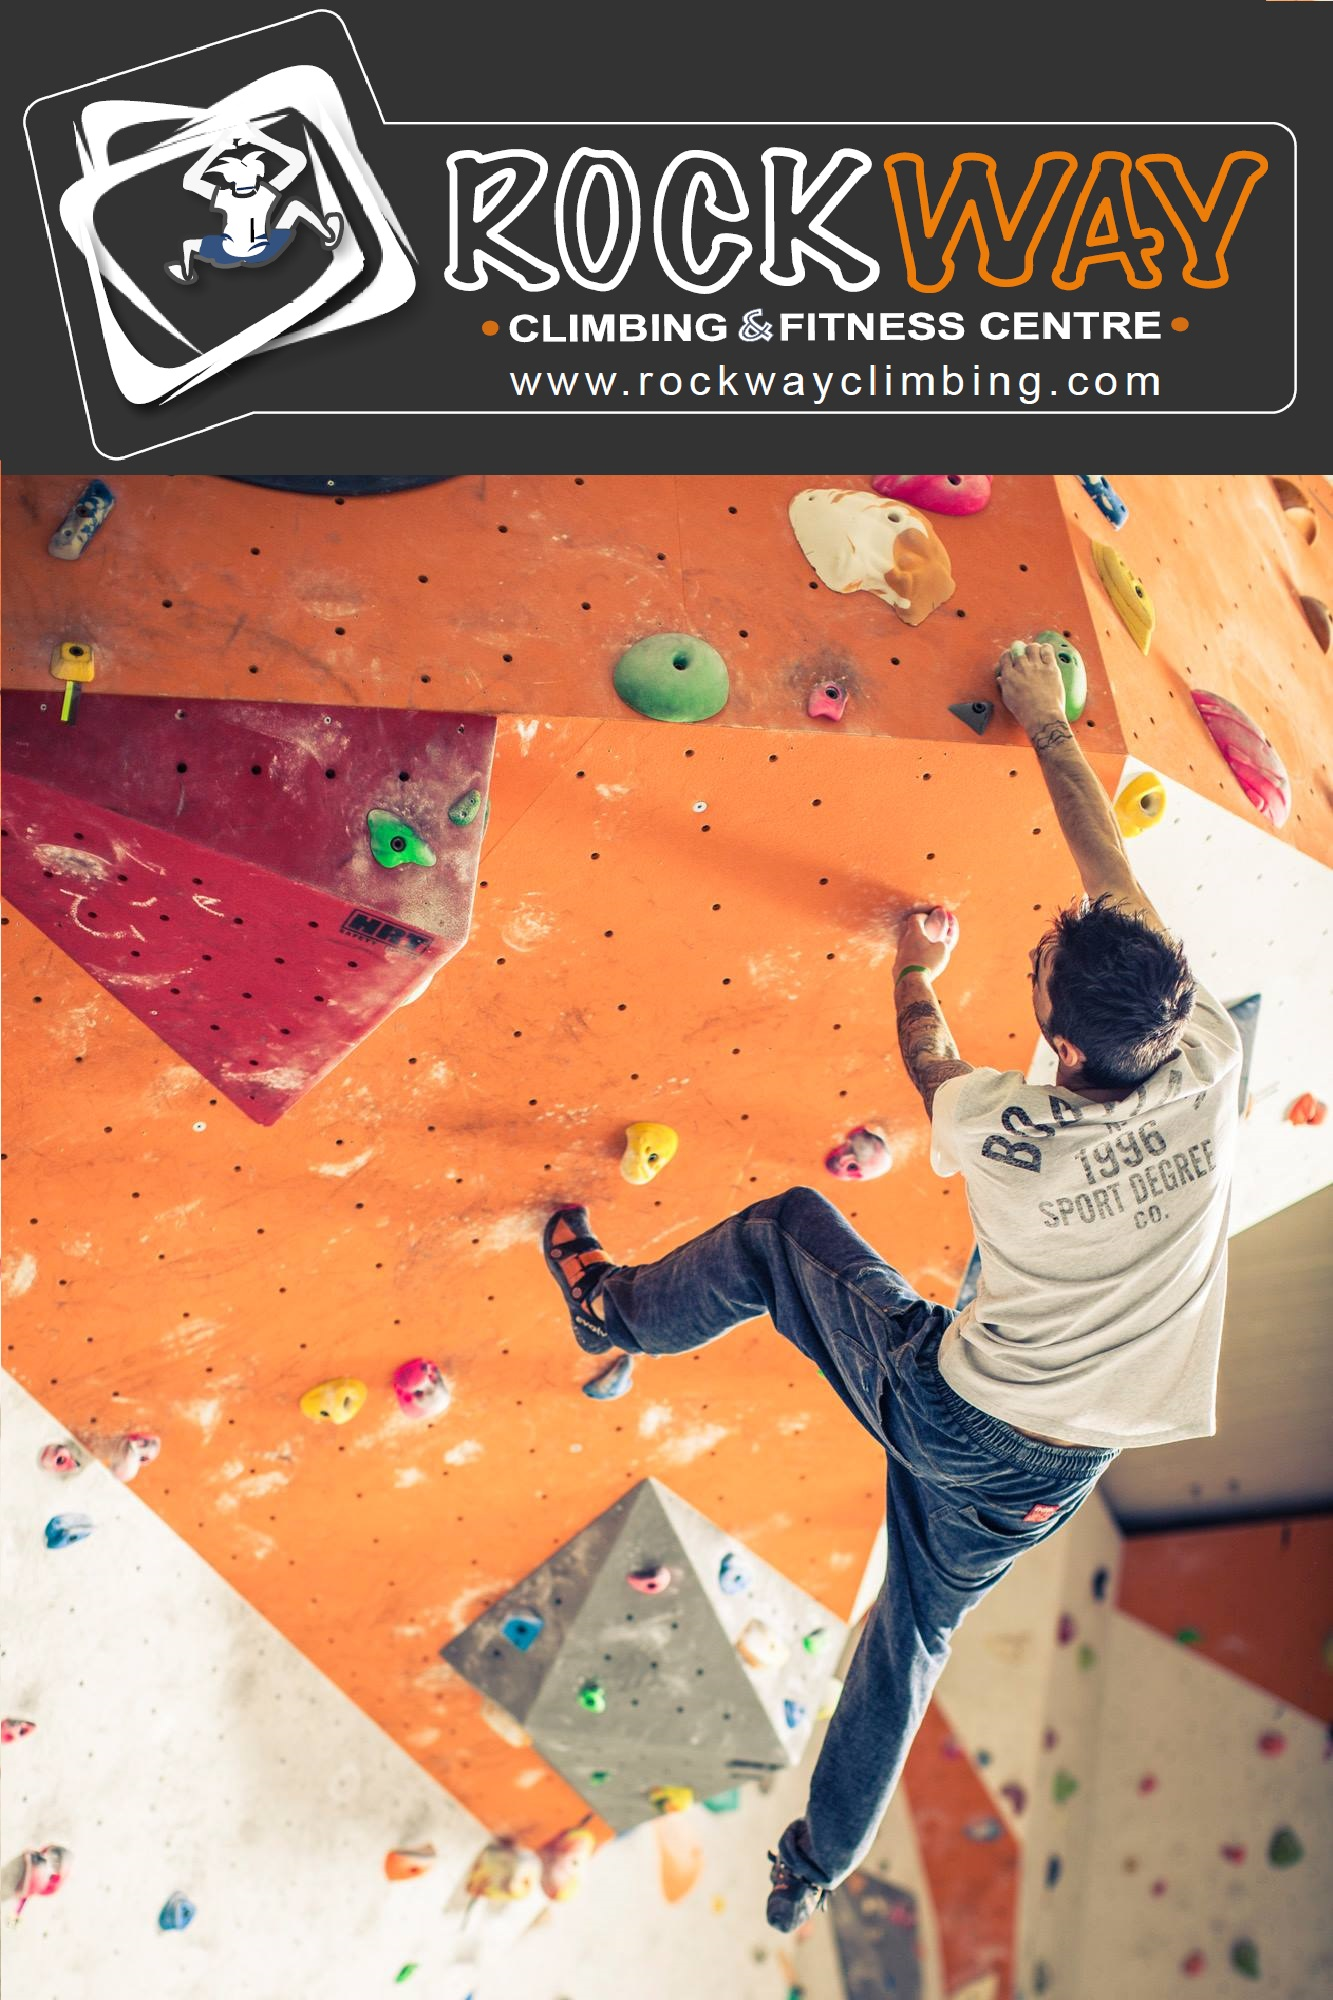 RockWay Climbing | Climbing and Fitness Centre